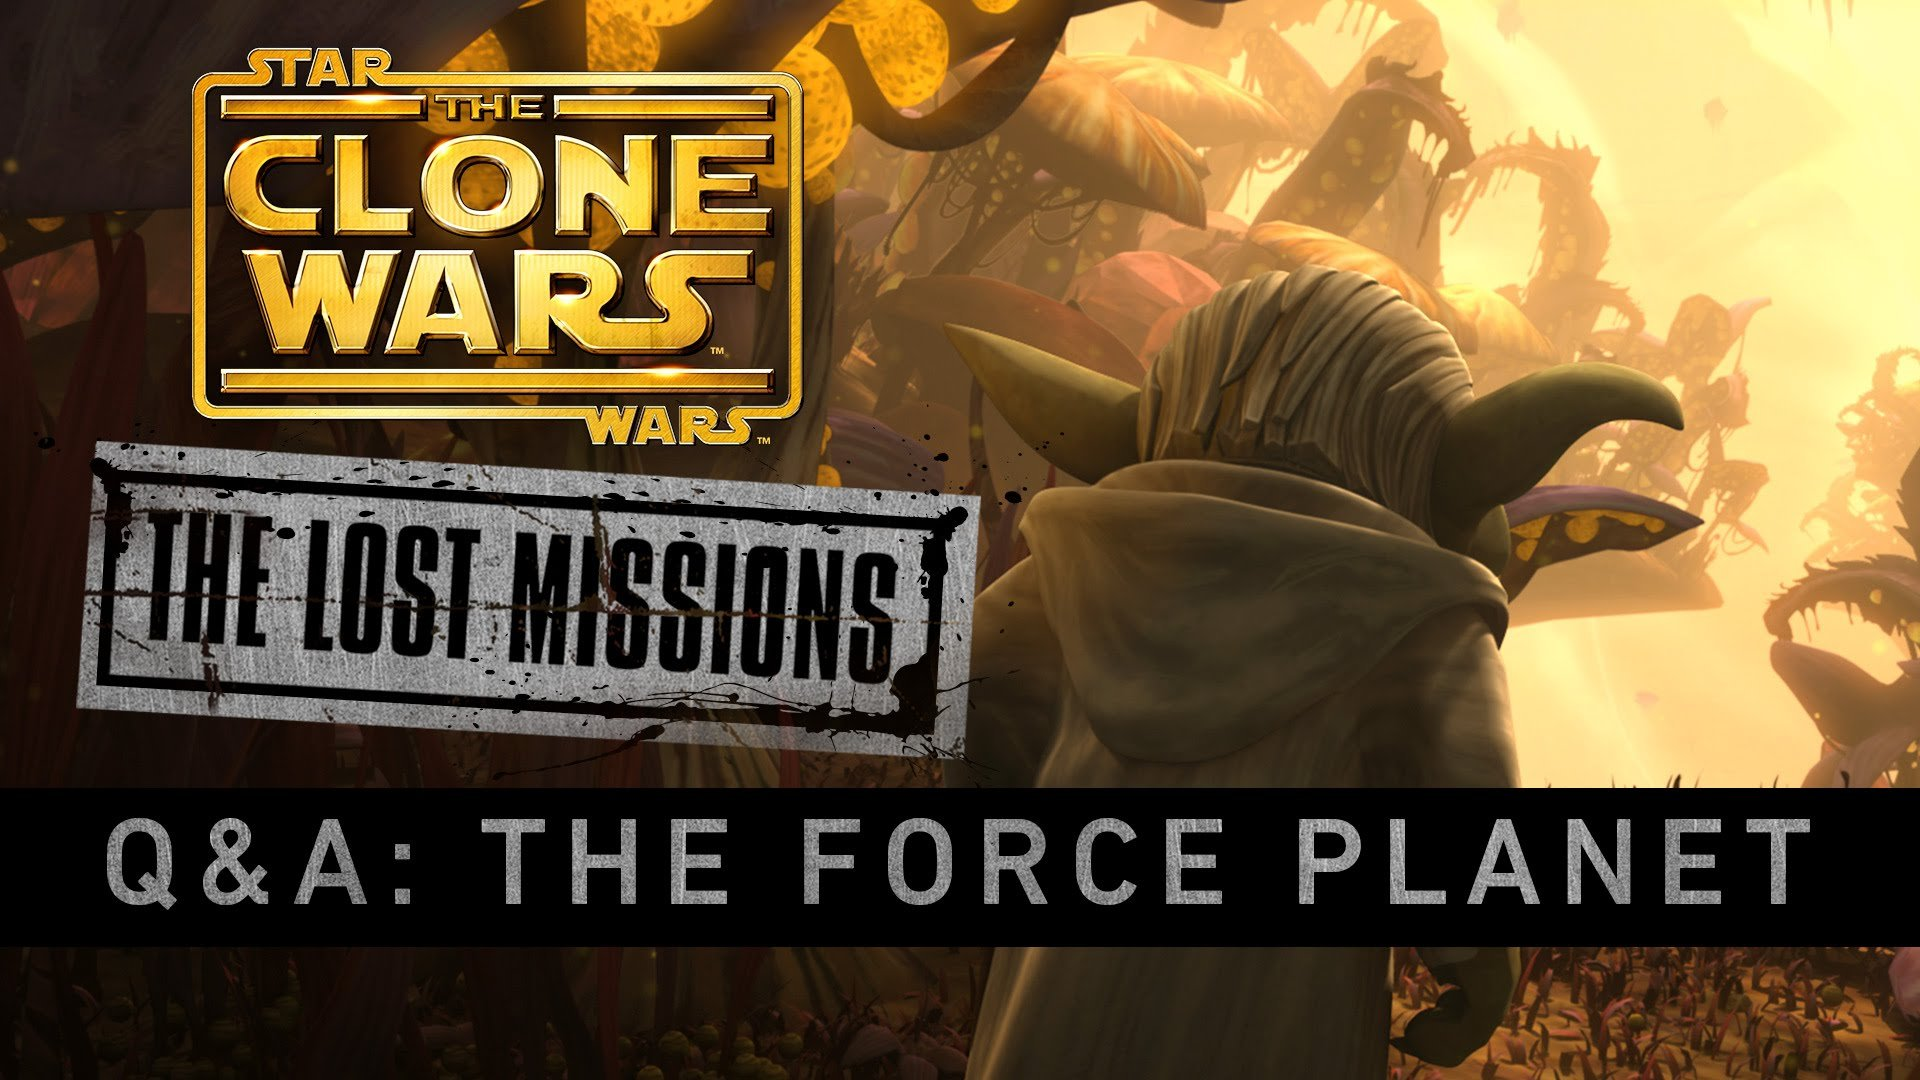 The Clone Wars - The Lost Missions Q&A: The Force Planet